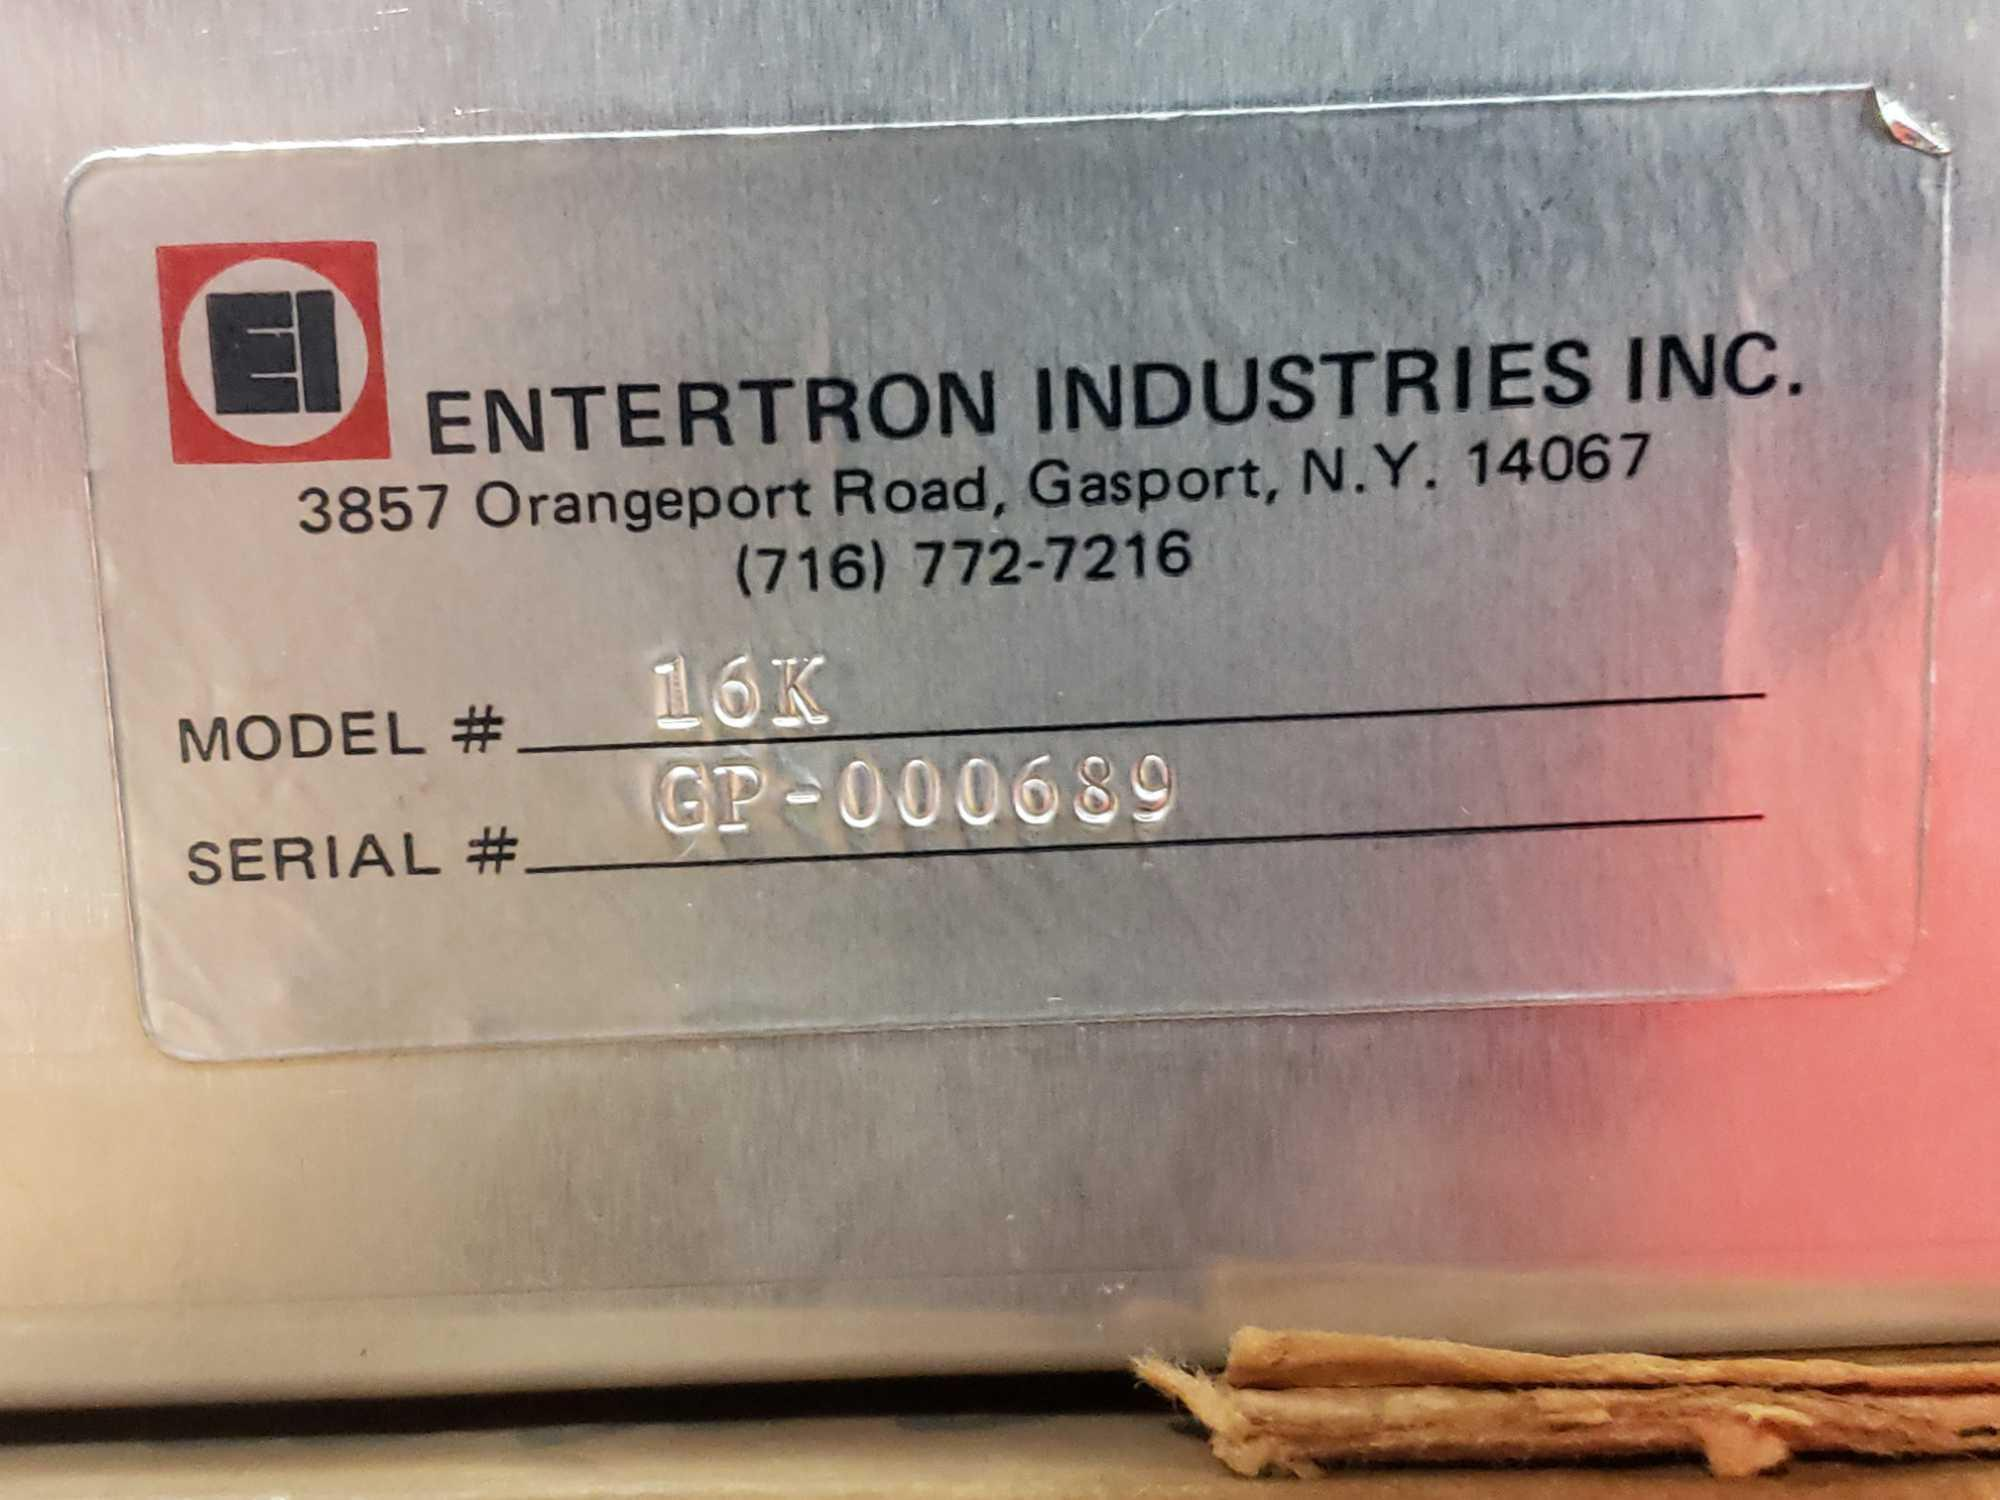 Entertron Industries Prom Programmer model 16K. New in box. - Image 3 of 3